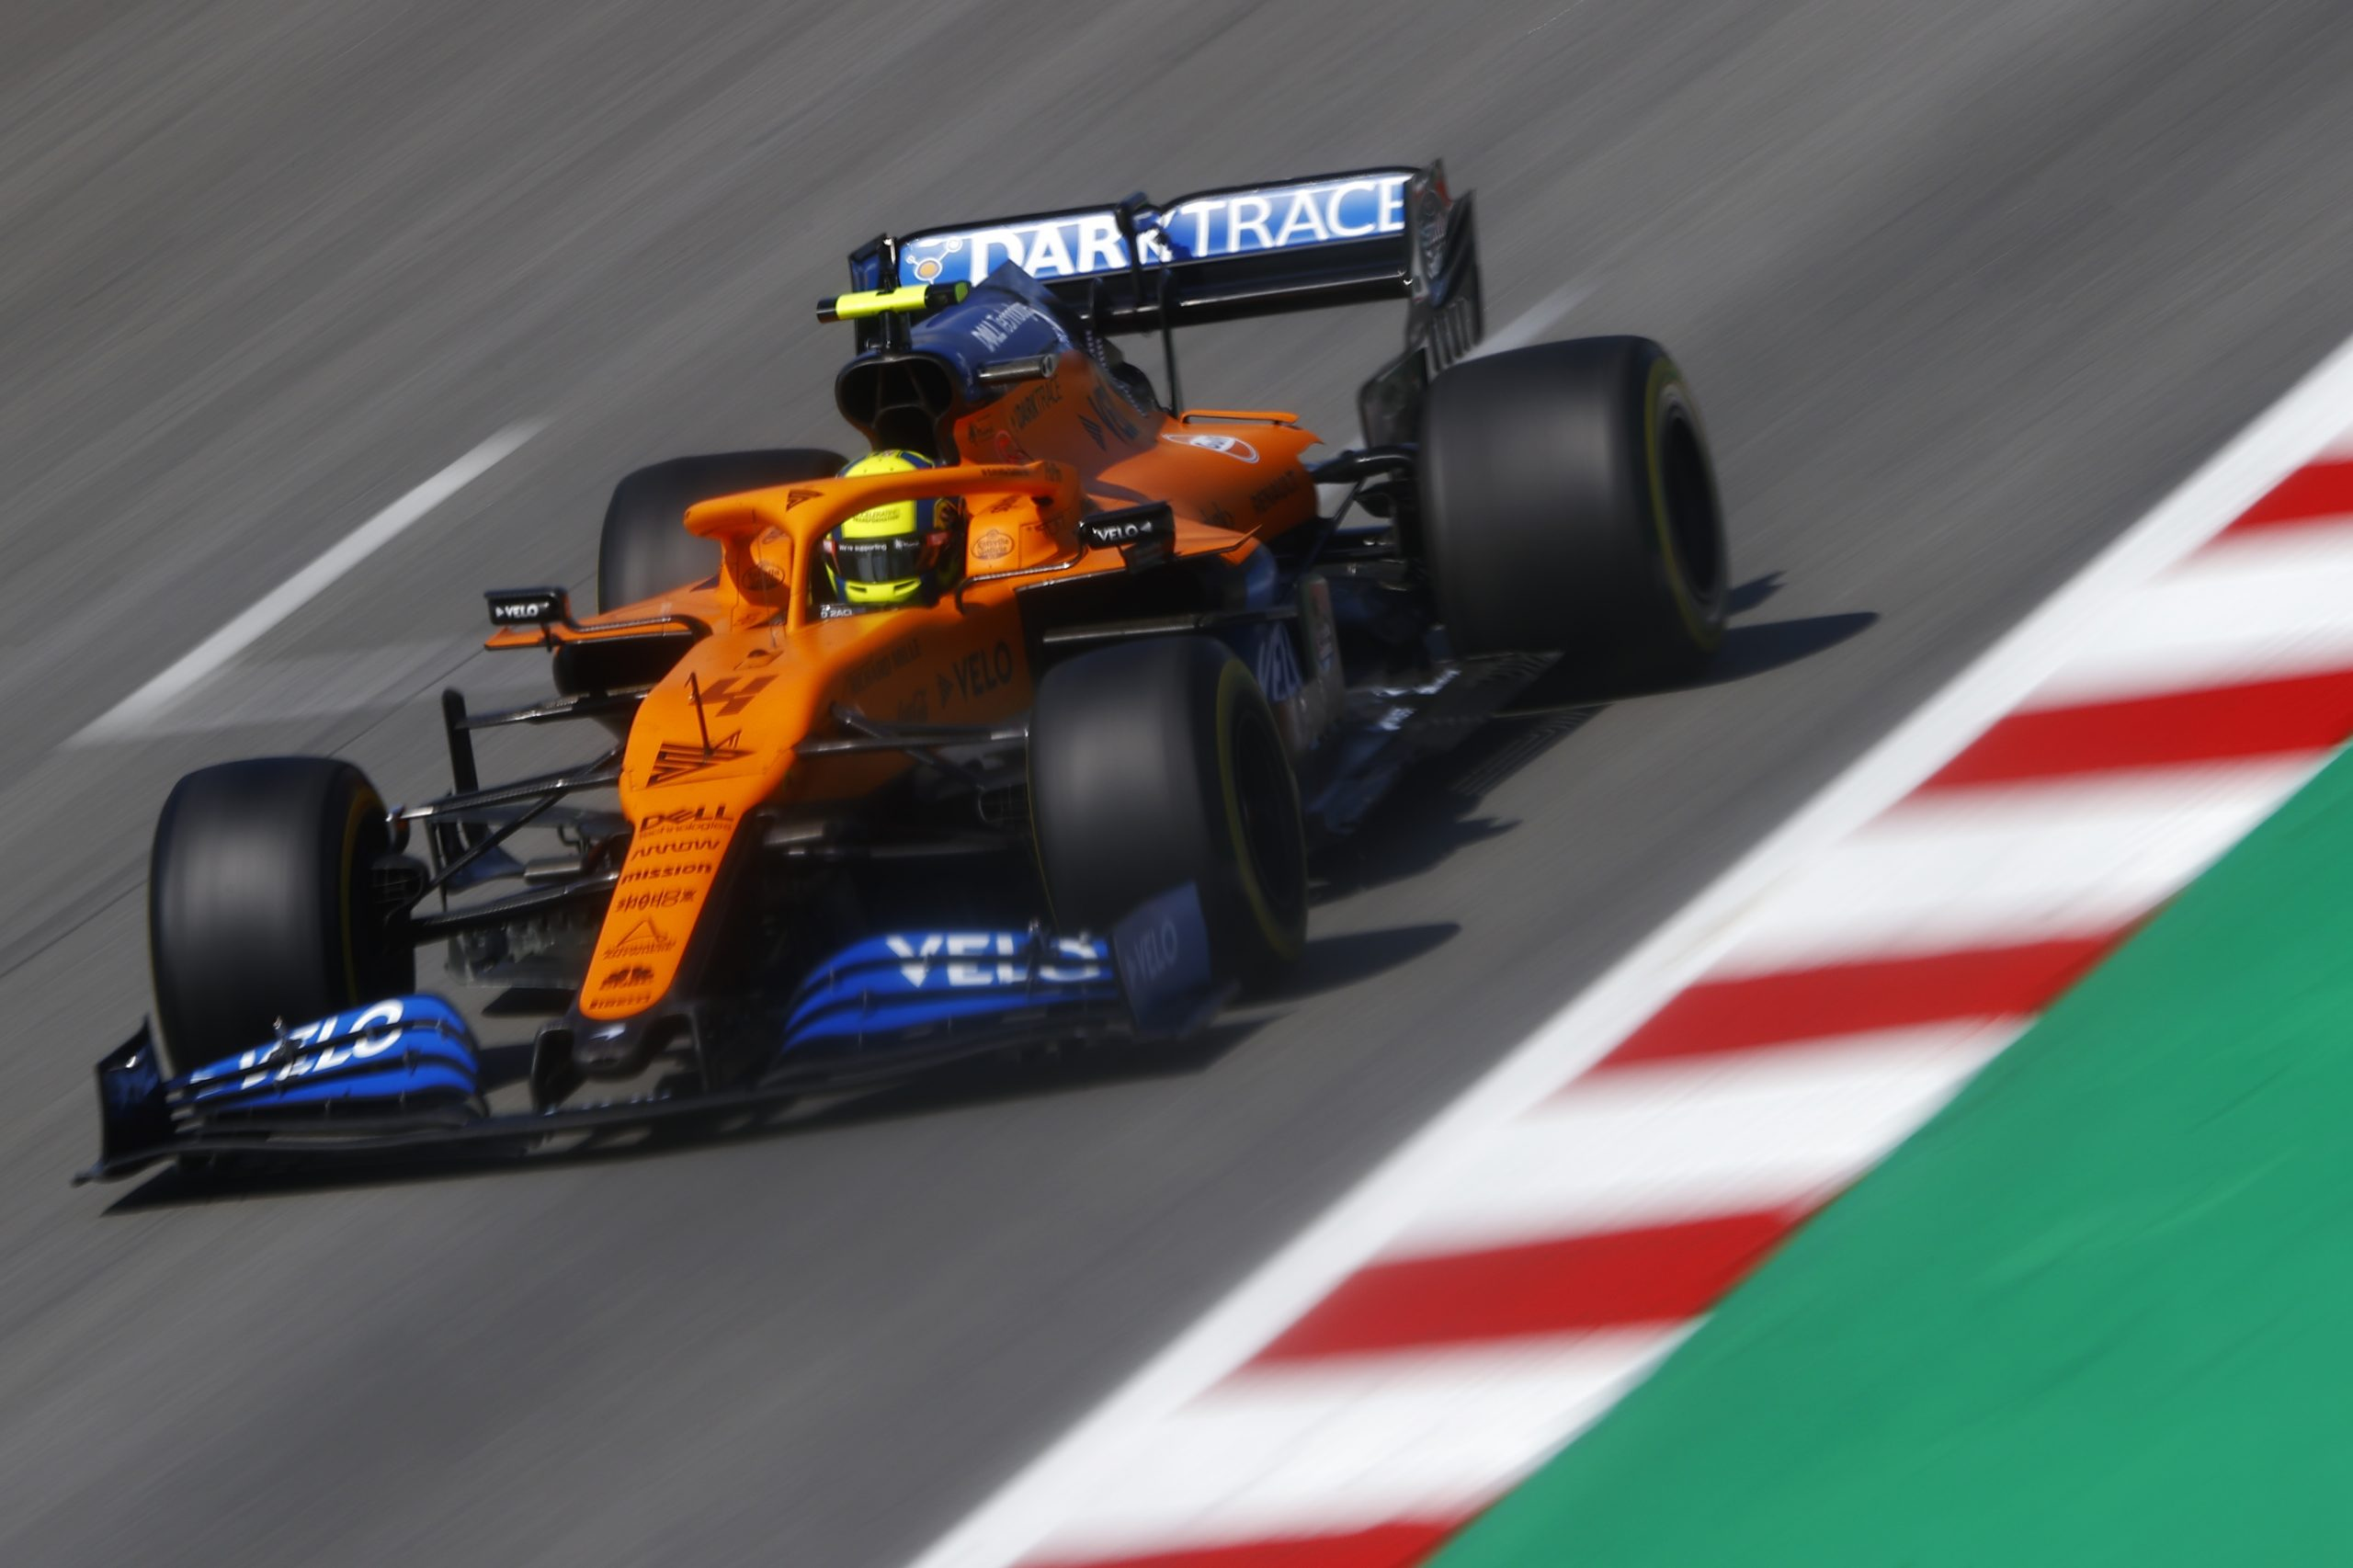 Lando Norris, McLaren MCL35, on the pit straight